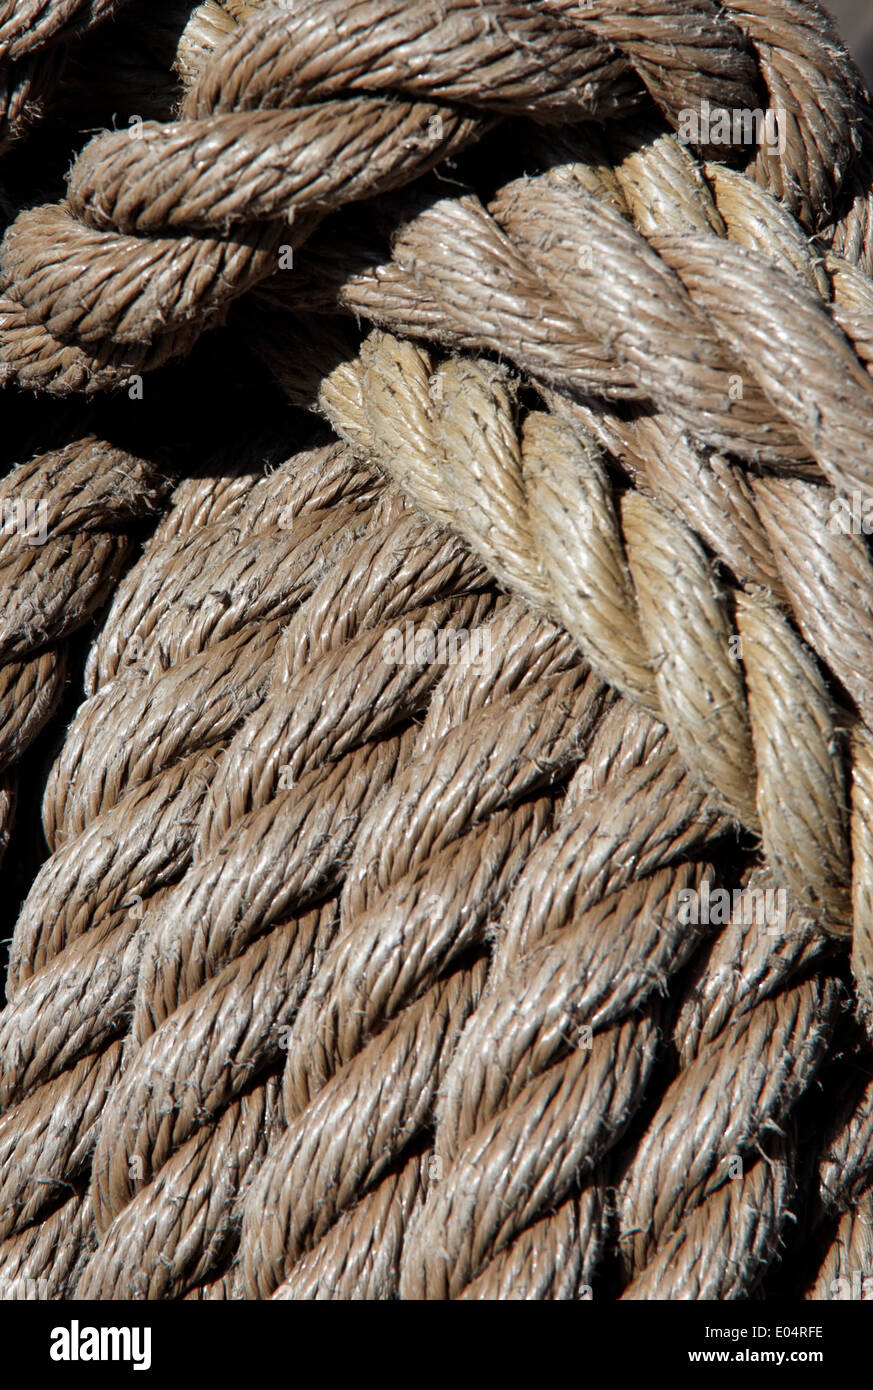 Thick ropes of a ship of rope, Dicke Seile eines Schiff Taues - Stock Image